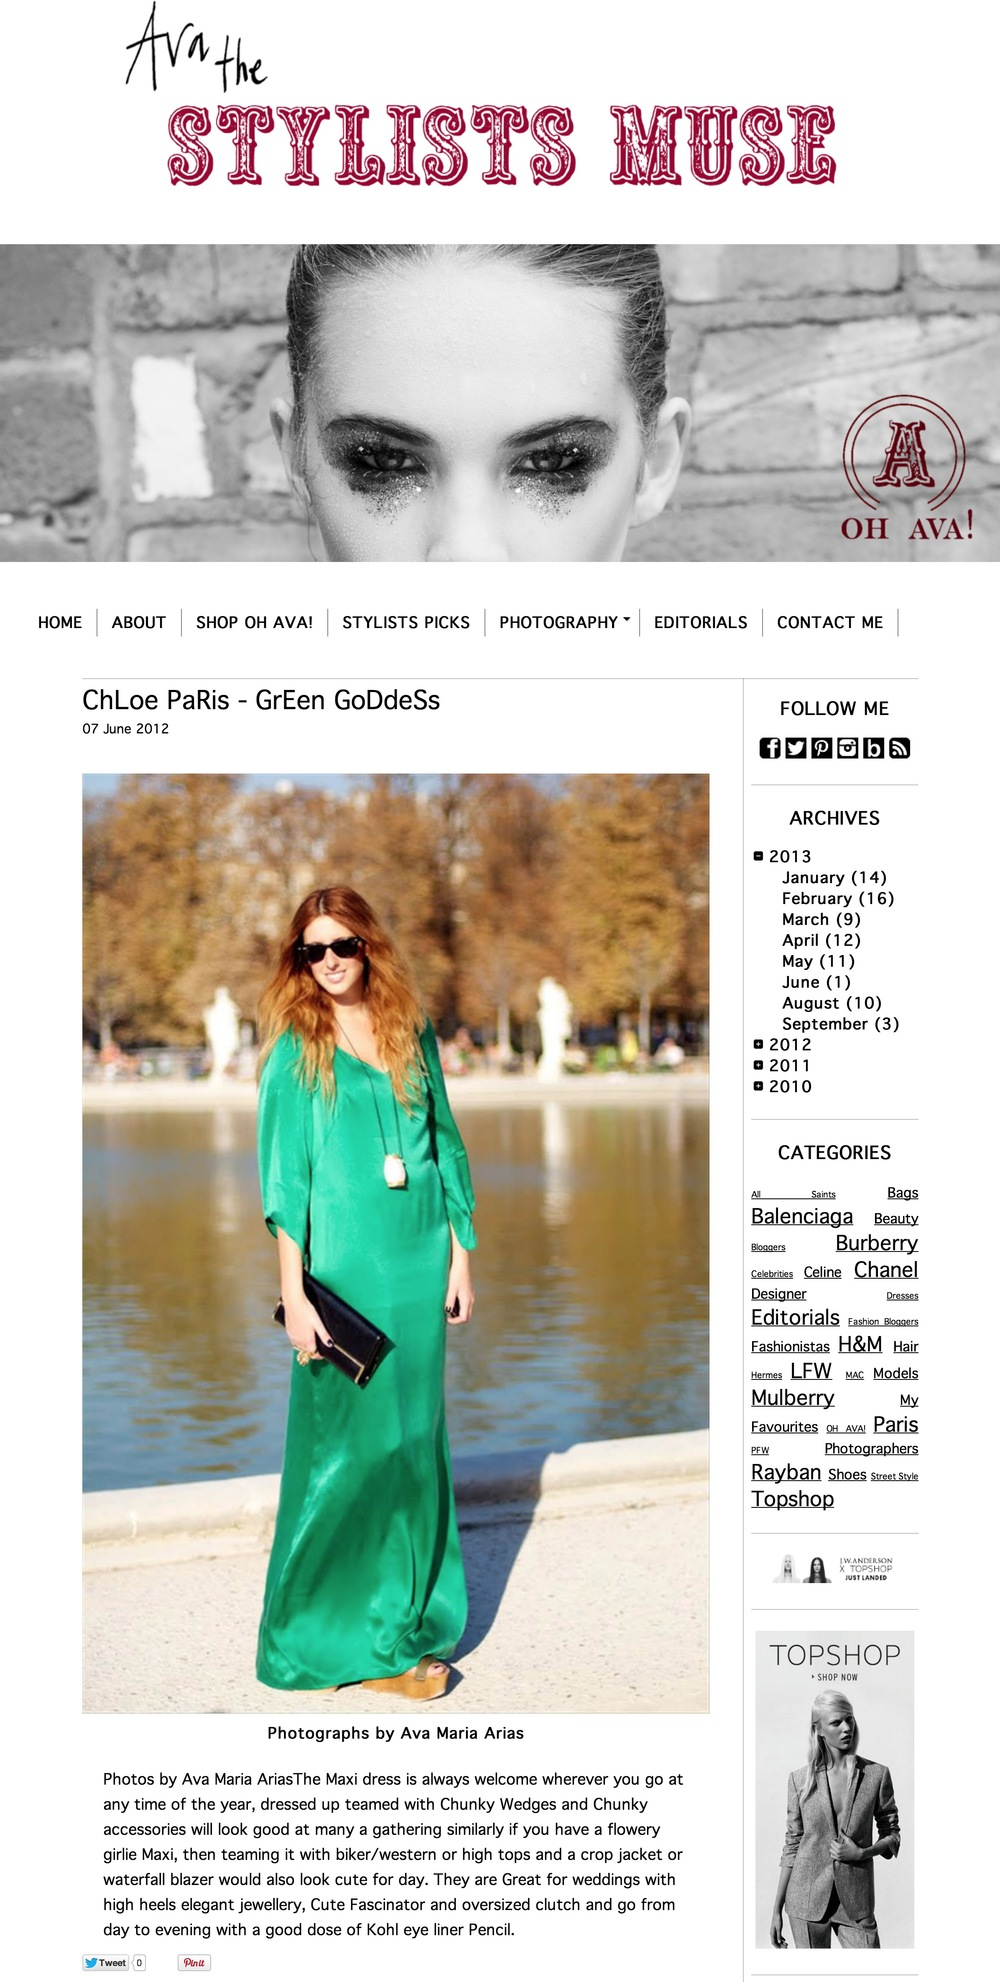 stylists muse- pfw march 2012